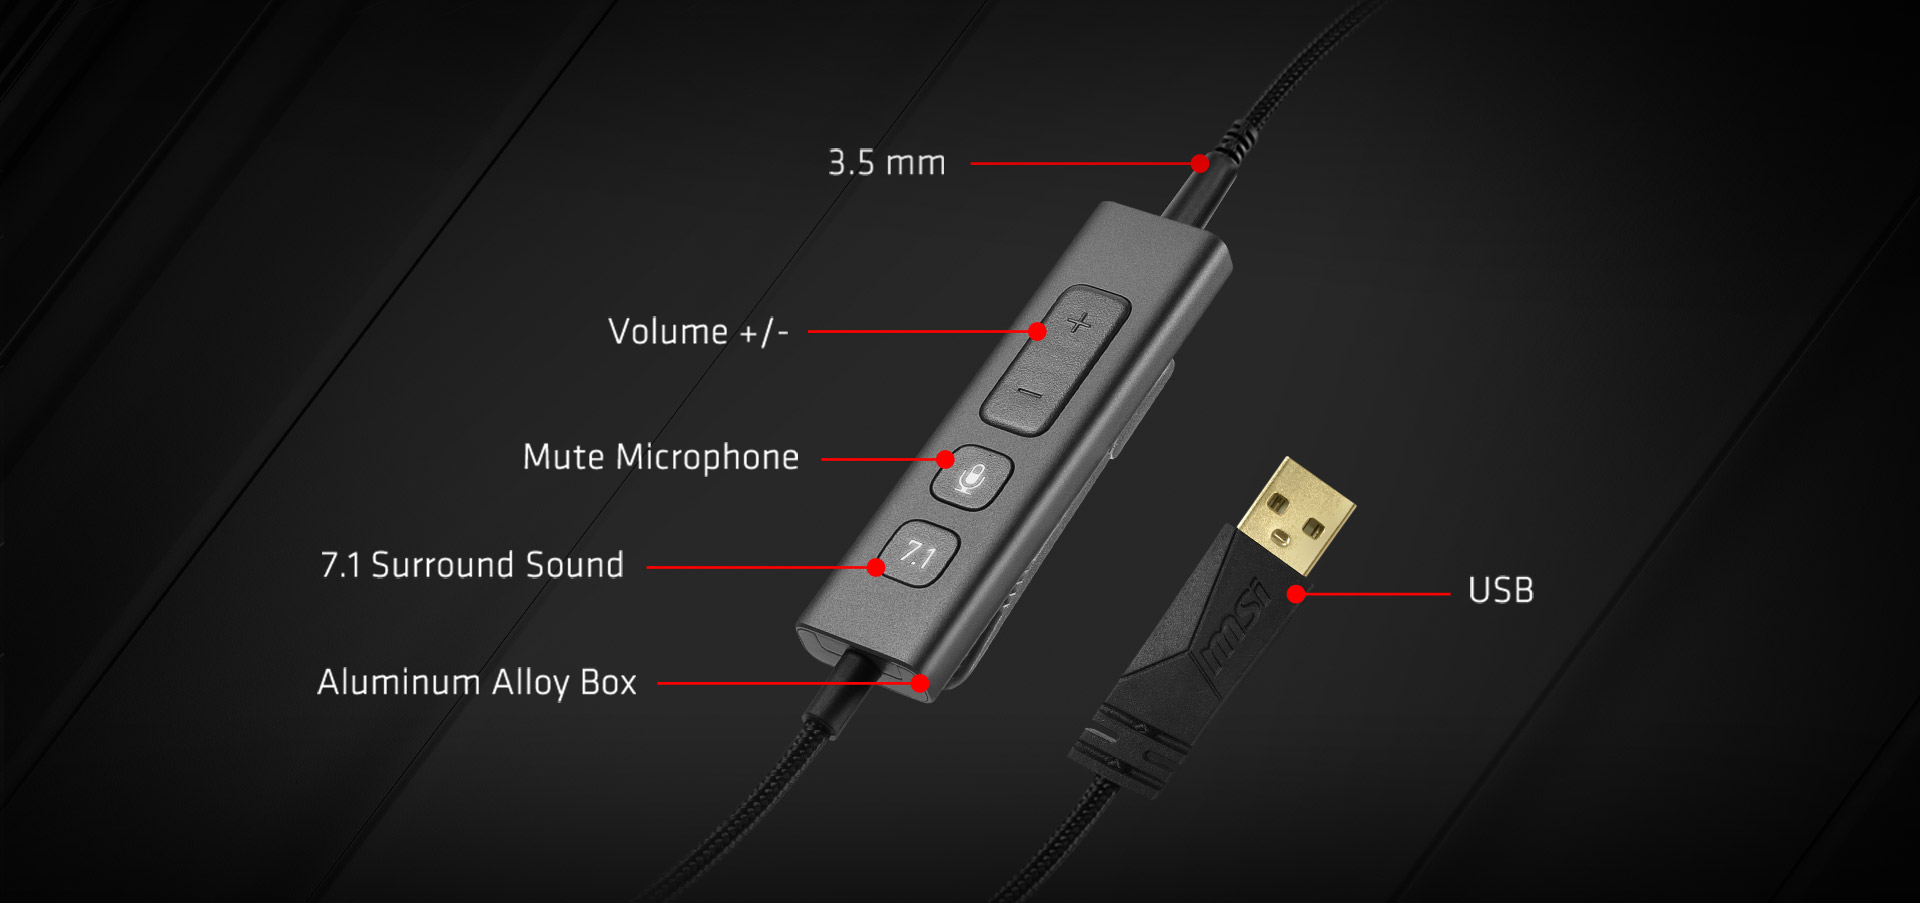 USB & 3.5 mm CONNECTOR